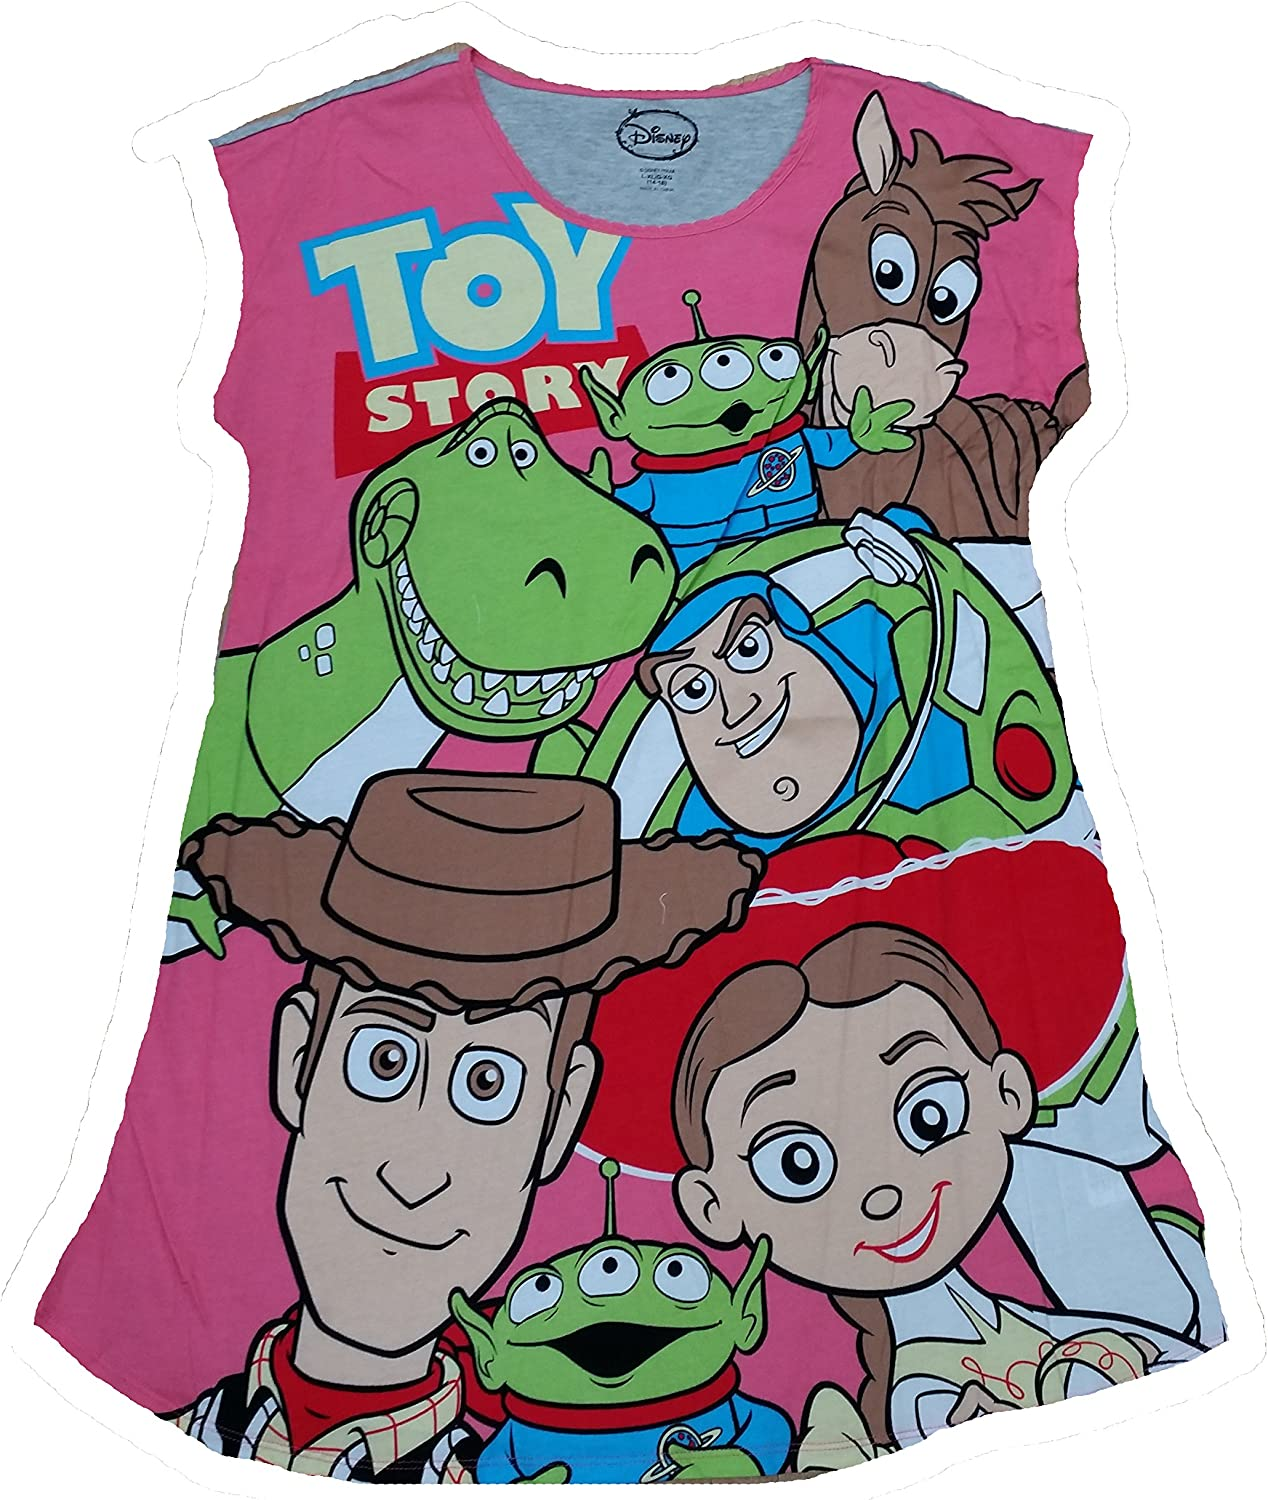 Disney Toy Story Nightgown Long Sleep Tee Shirt